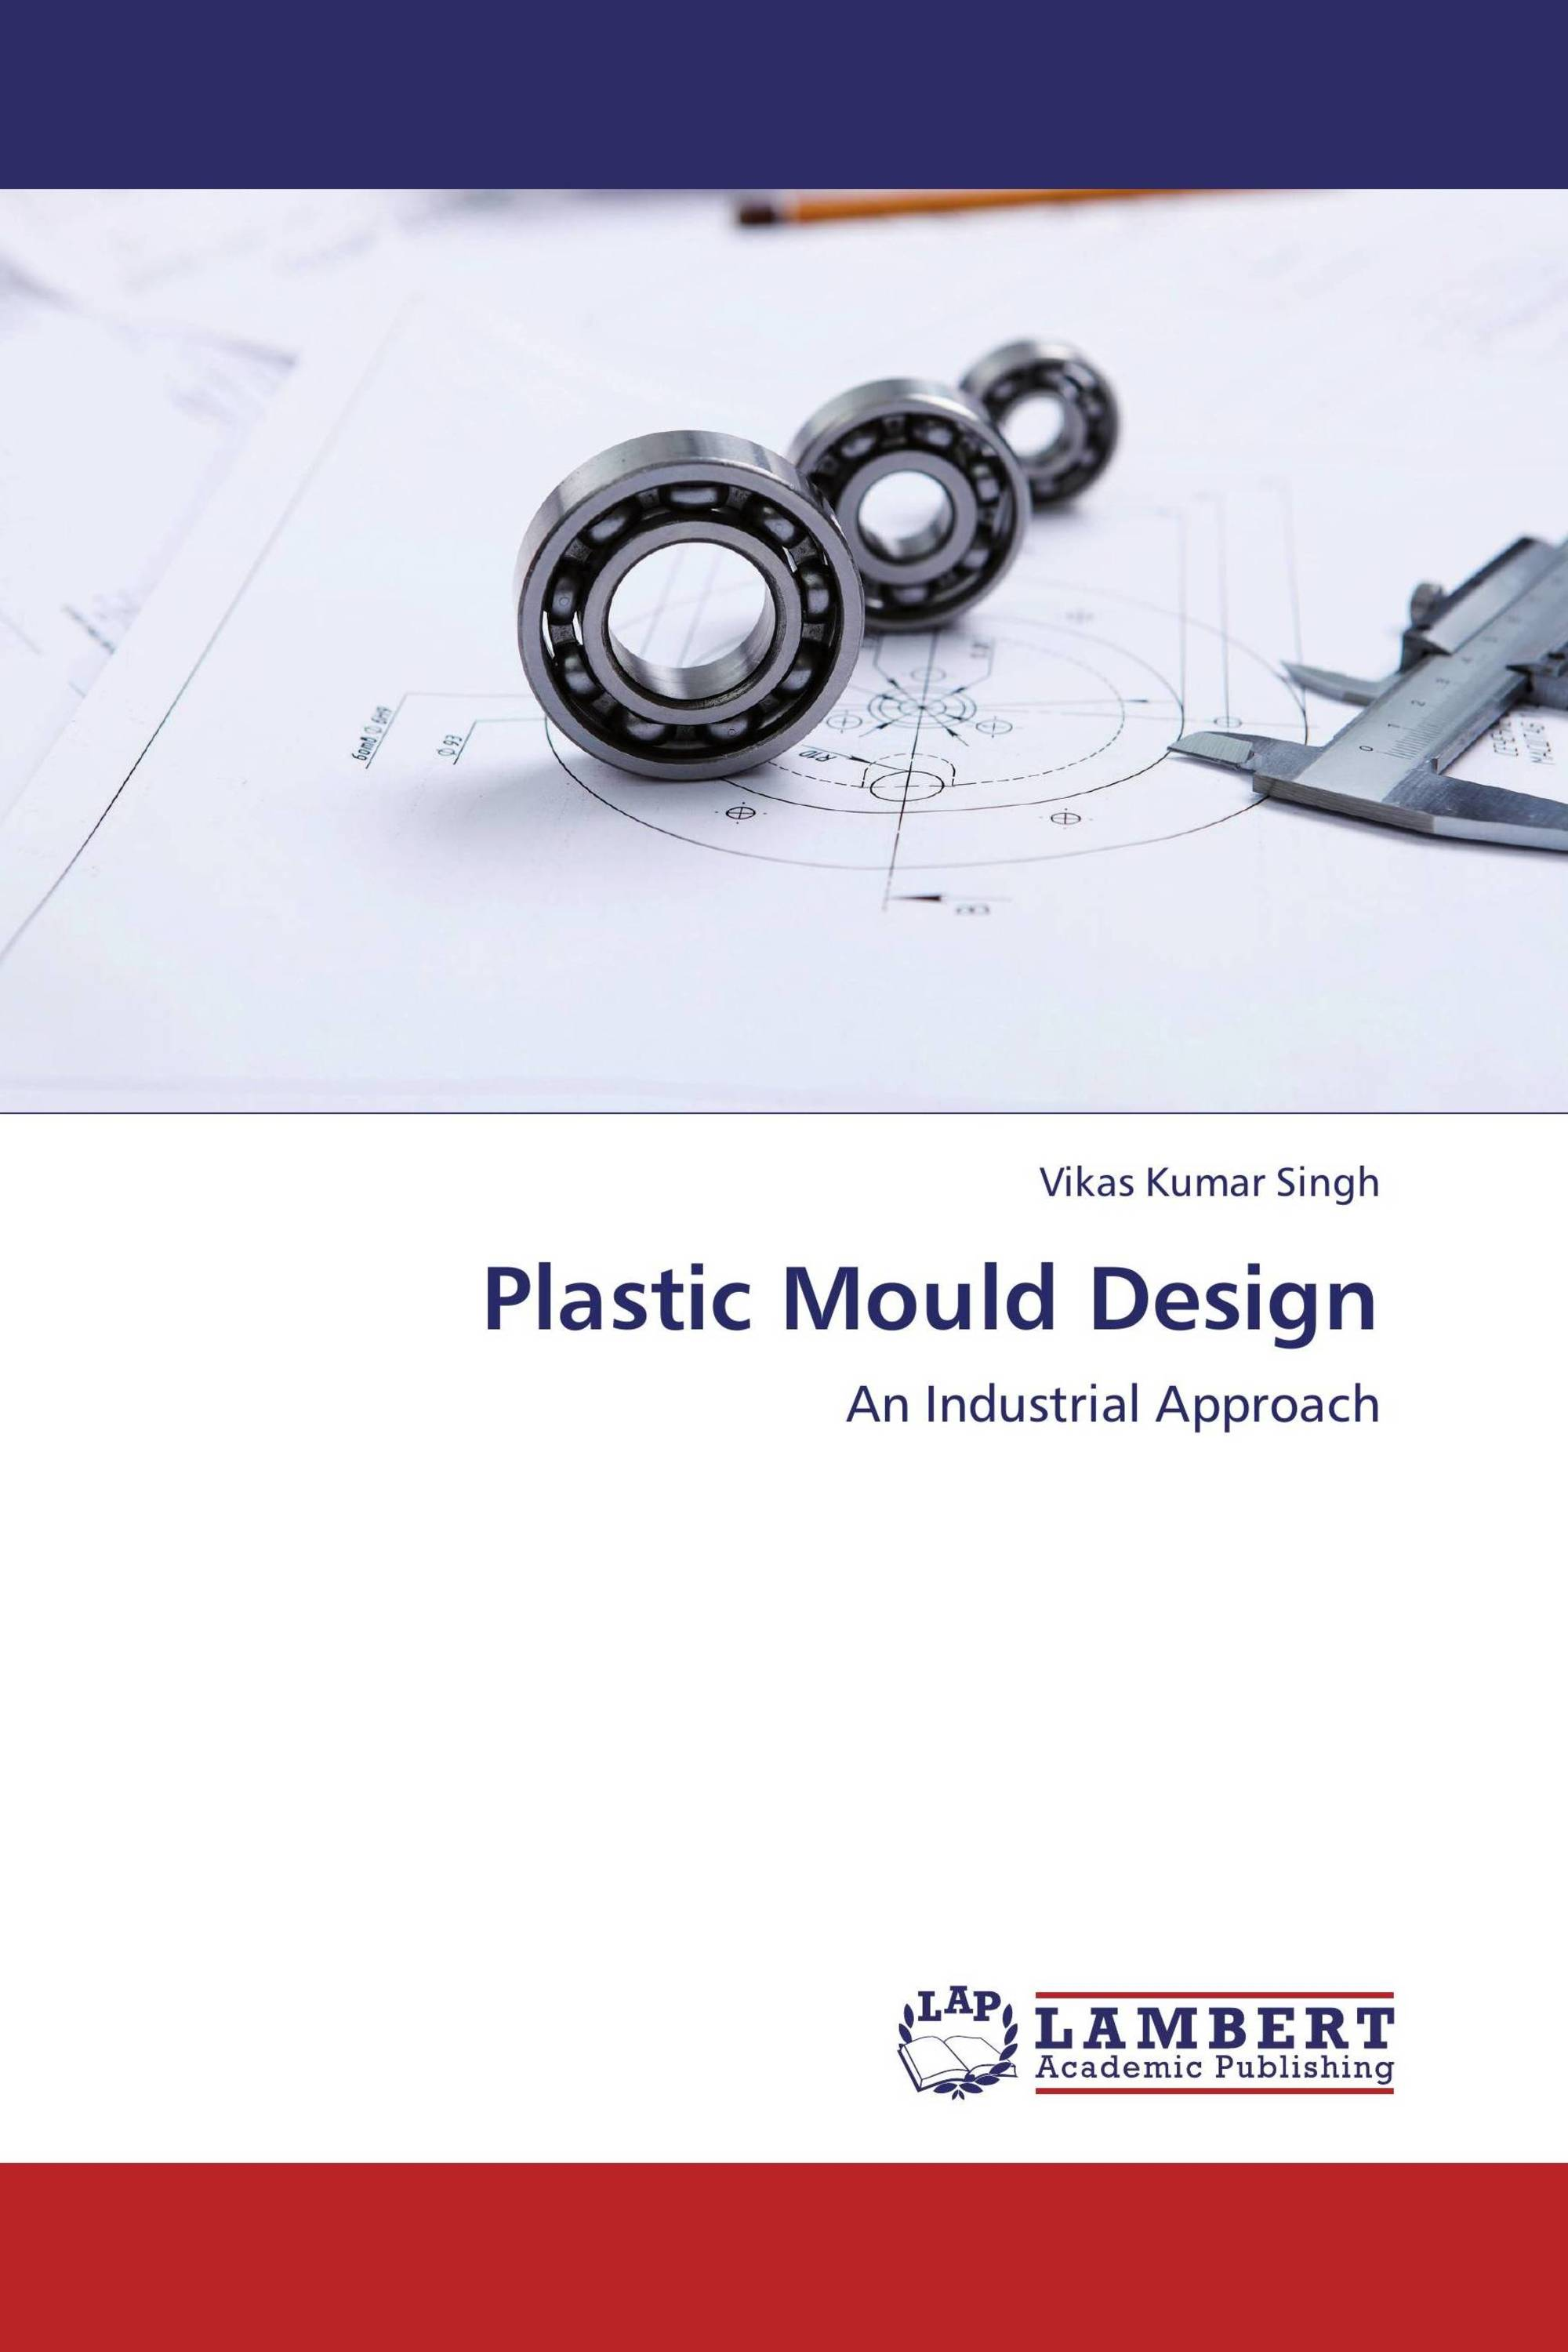 Plastic Mould Design / 978-3-659-44236-0 / 9783659442360